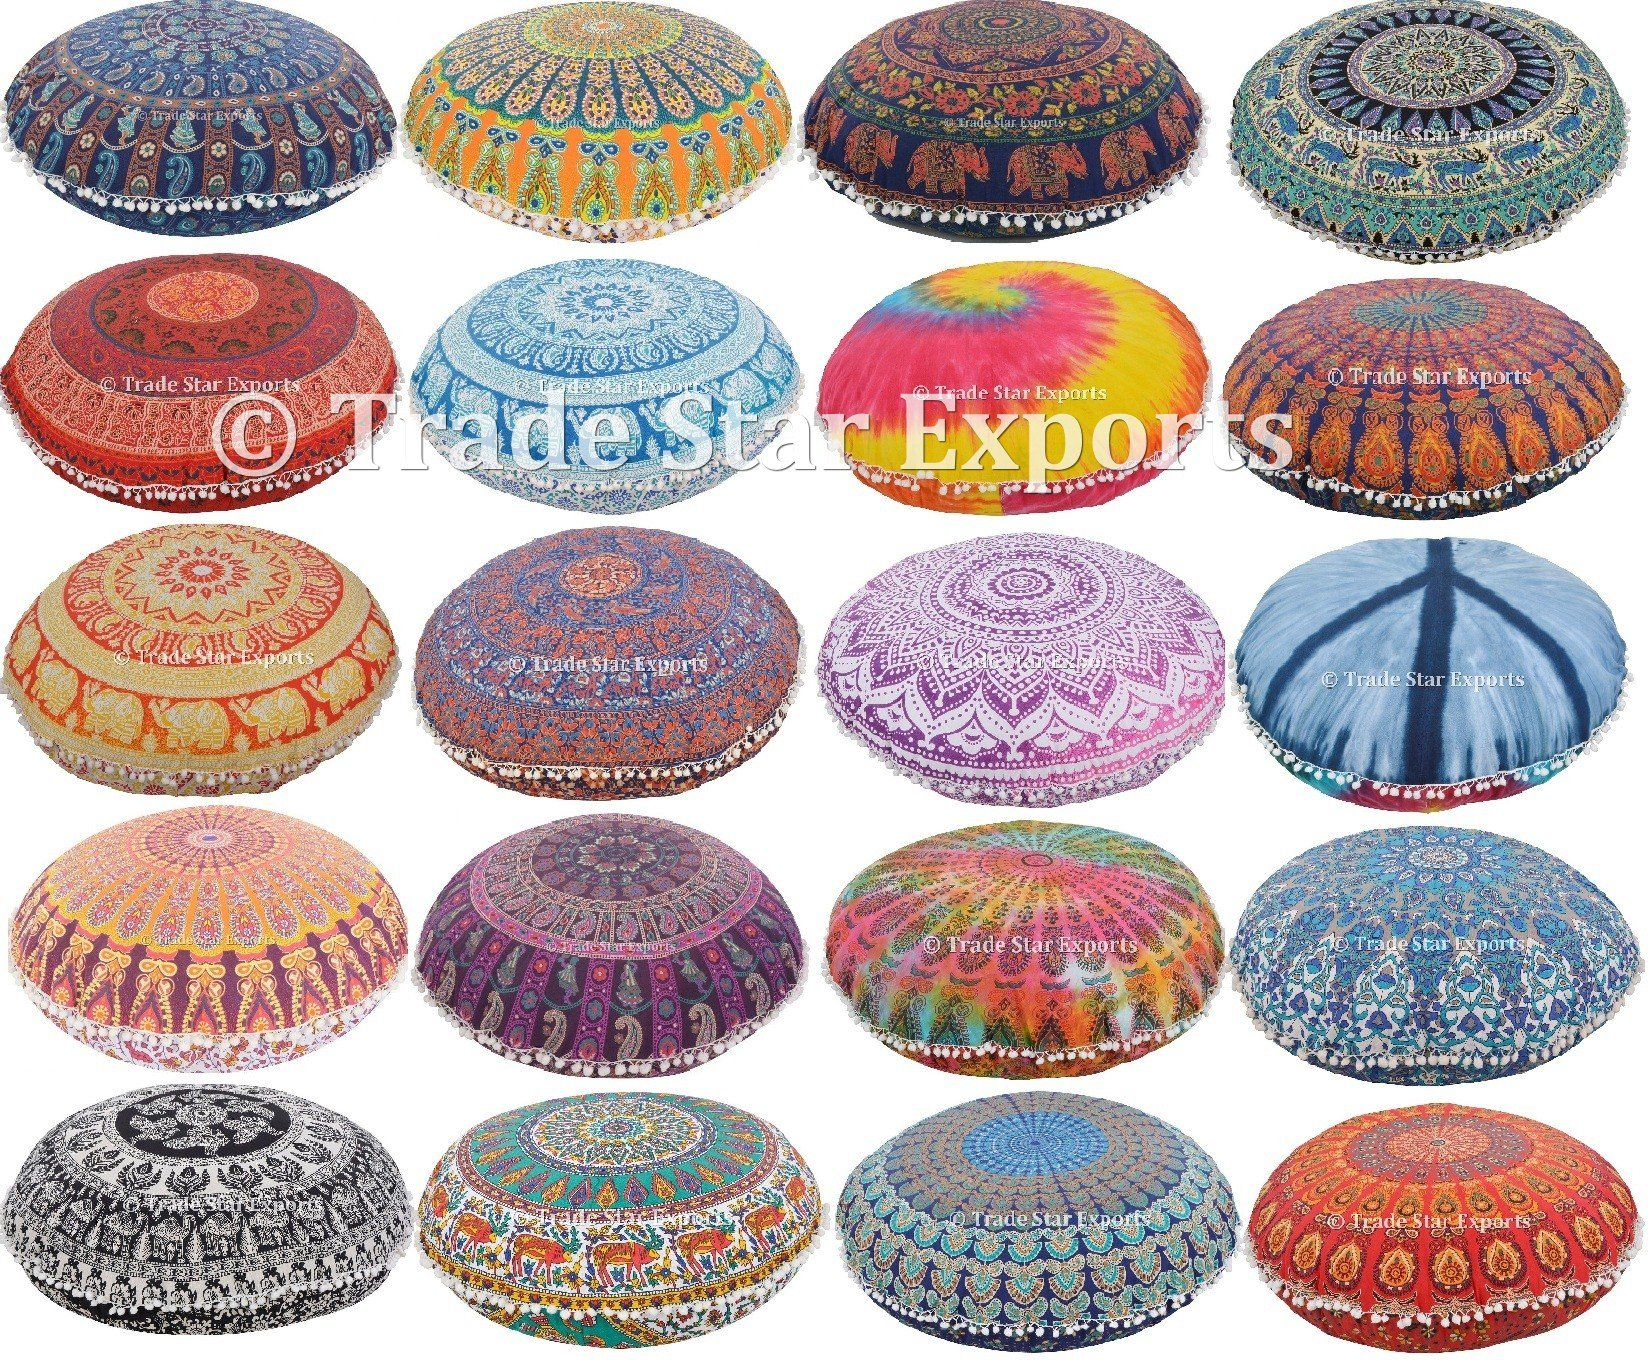 Set Of 10 Indian Mandala Pillow Cover, 32'' Round Cushion, Ethnic Floor Pillow Case, Boho Cushion Cover, Decorative Outdoor Pillows, Pom Pom Pillow Sham by Trade Star Exports